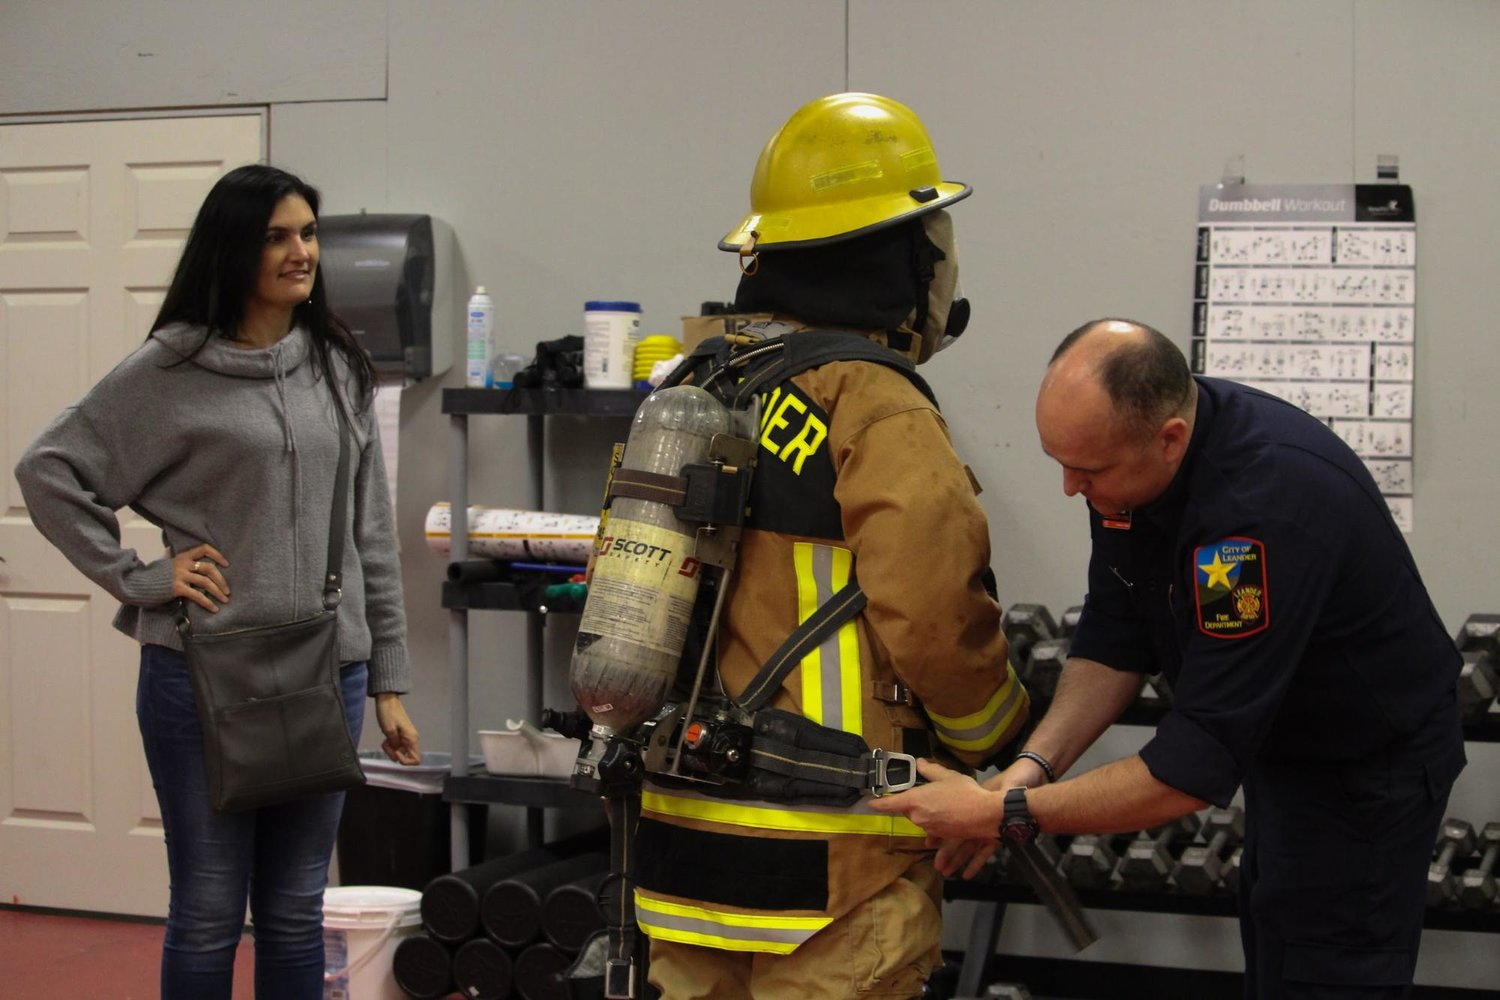 Glenn High School college and career transition coordinator (left) observes Leander Fire Department probationary firefighter Russell Summers fitting GHS senior Mia Crane into a set of 'turnout gear' during a COOL Week assignment with LFD.